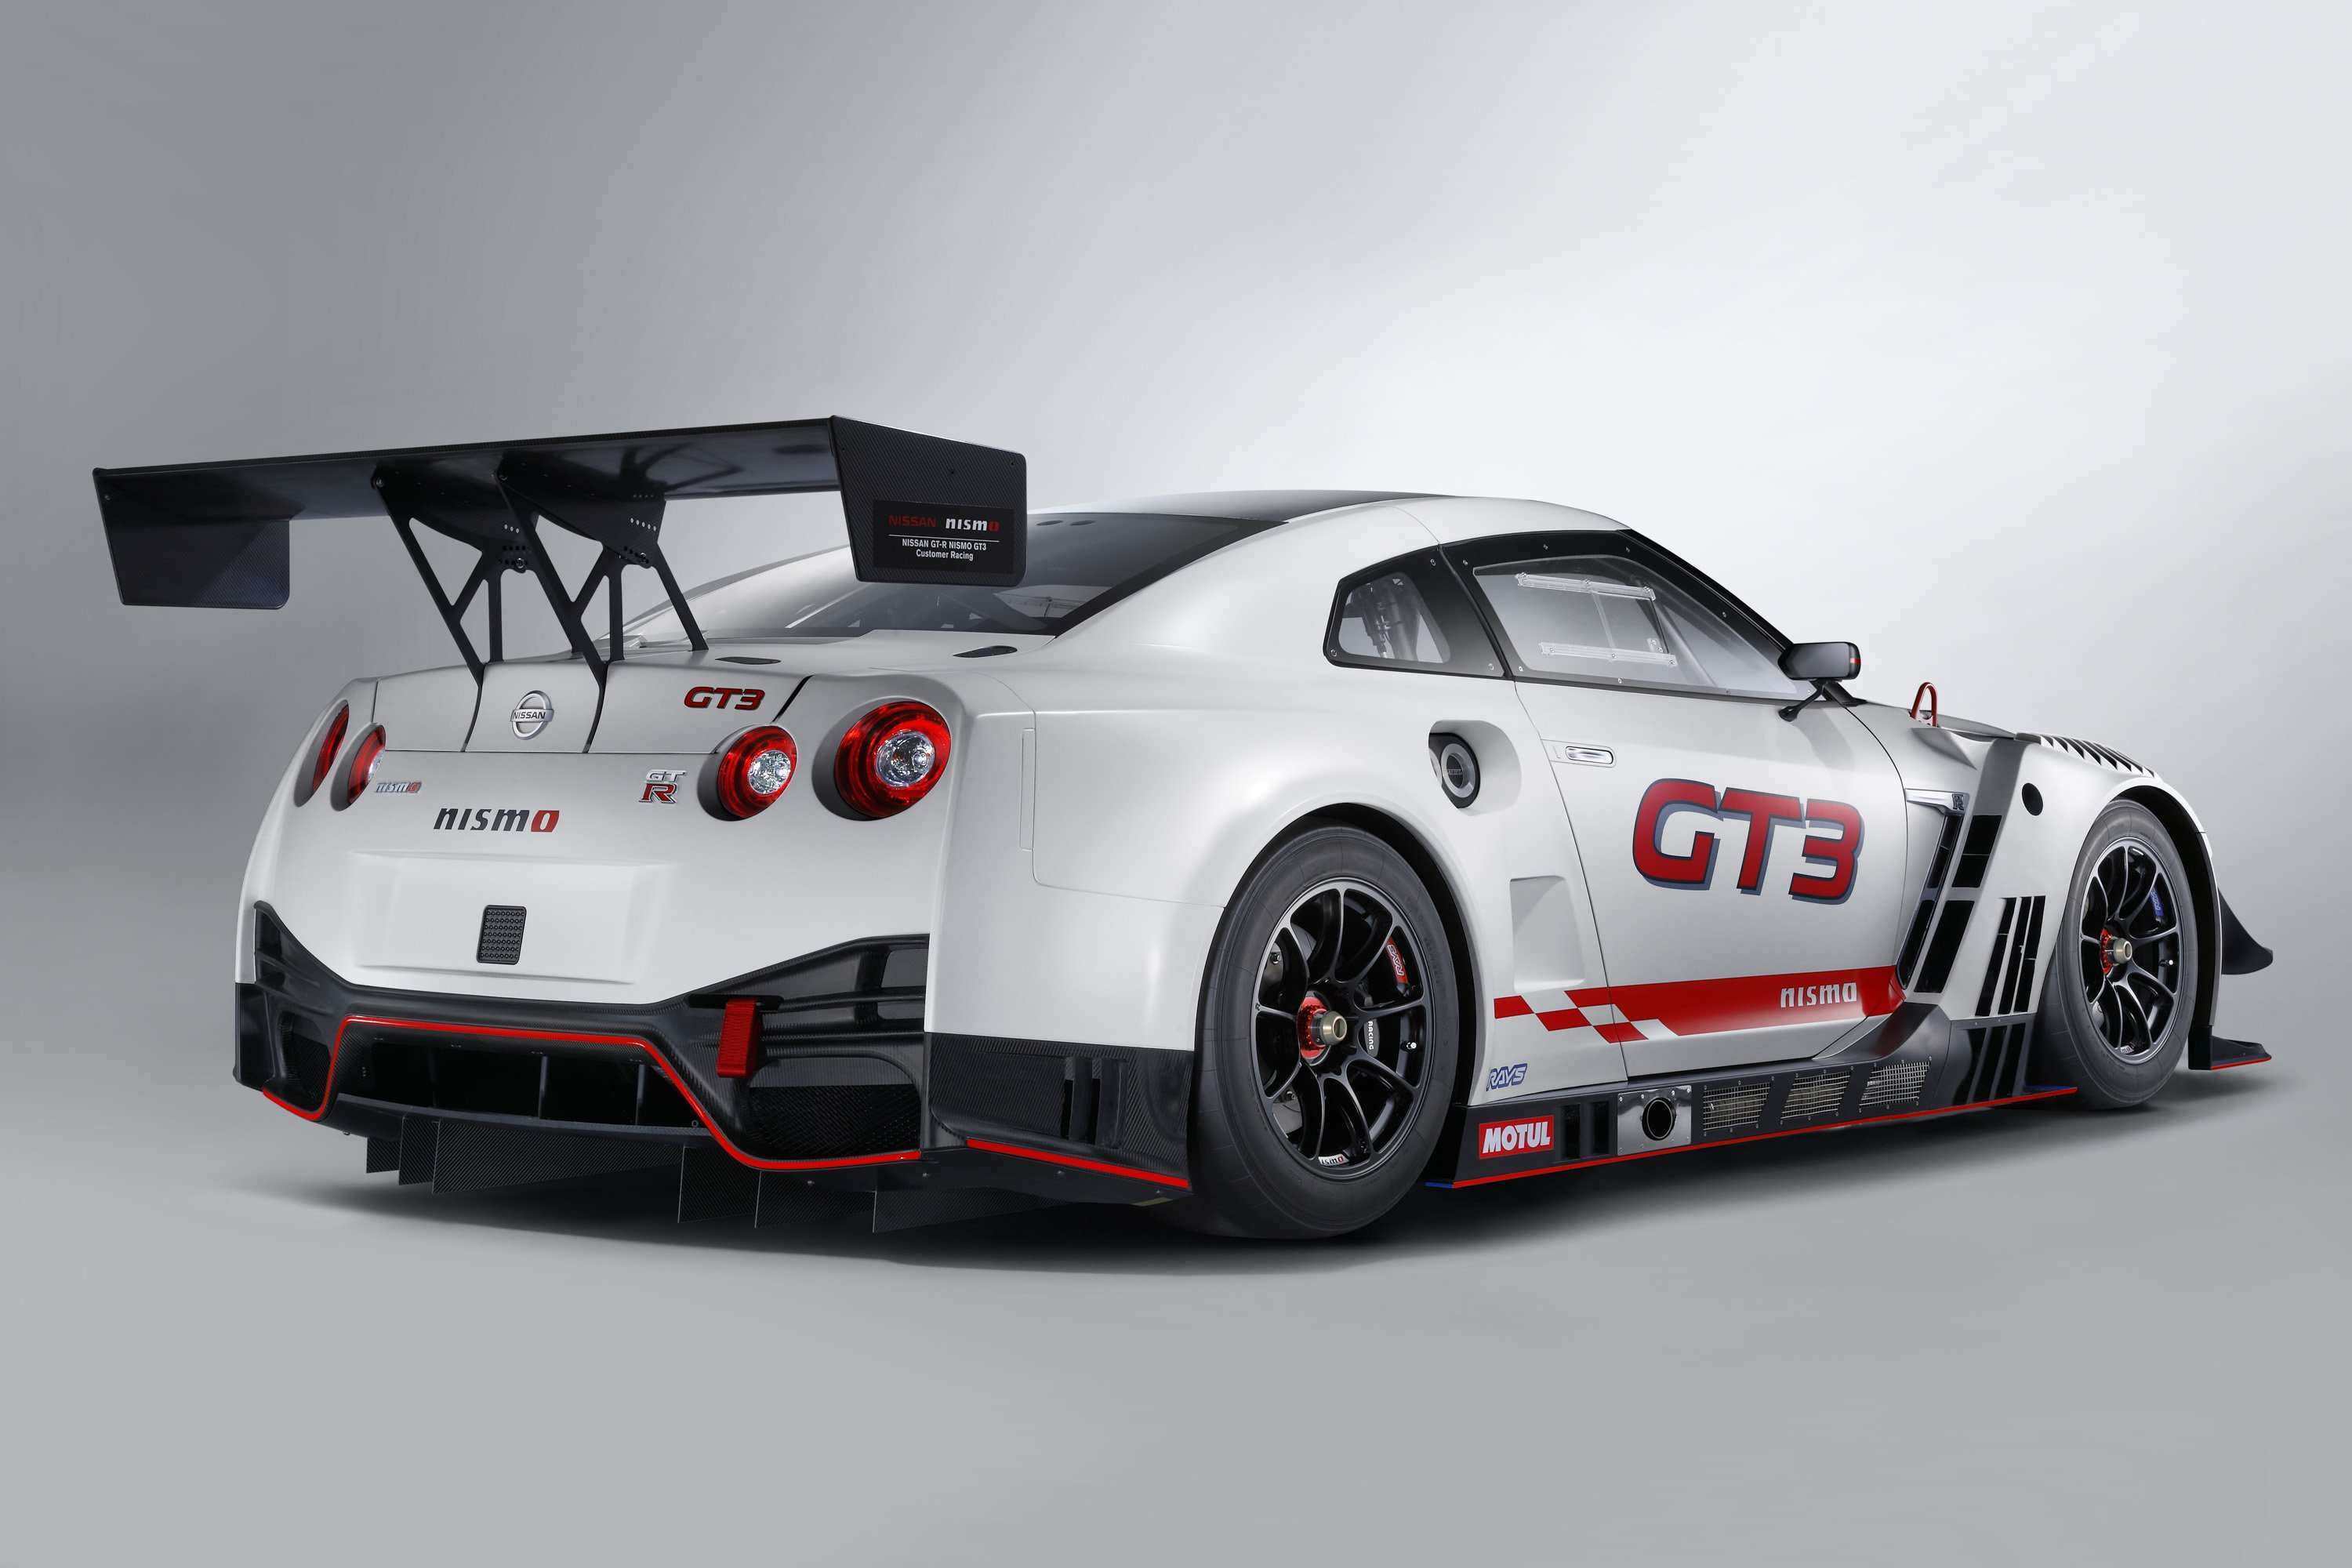 61 New Nissan Gtr 2019 Top Speed Price and Review with Nissan Gtr 2019 Top Speed